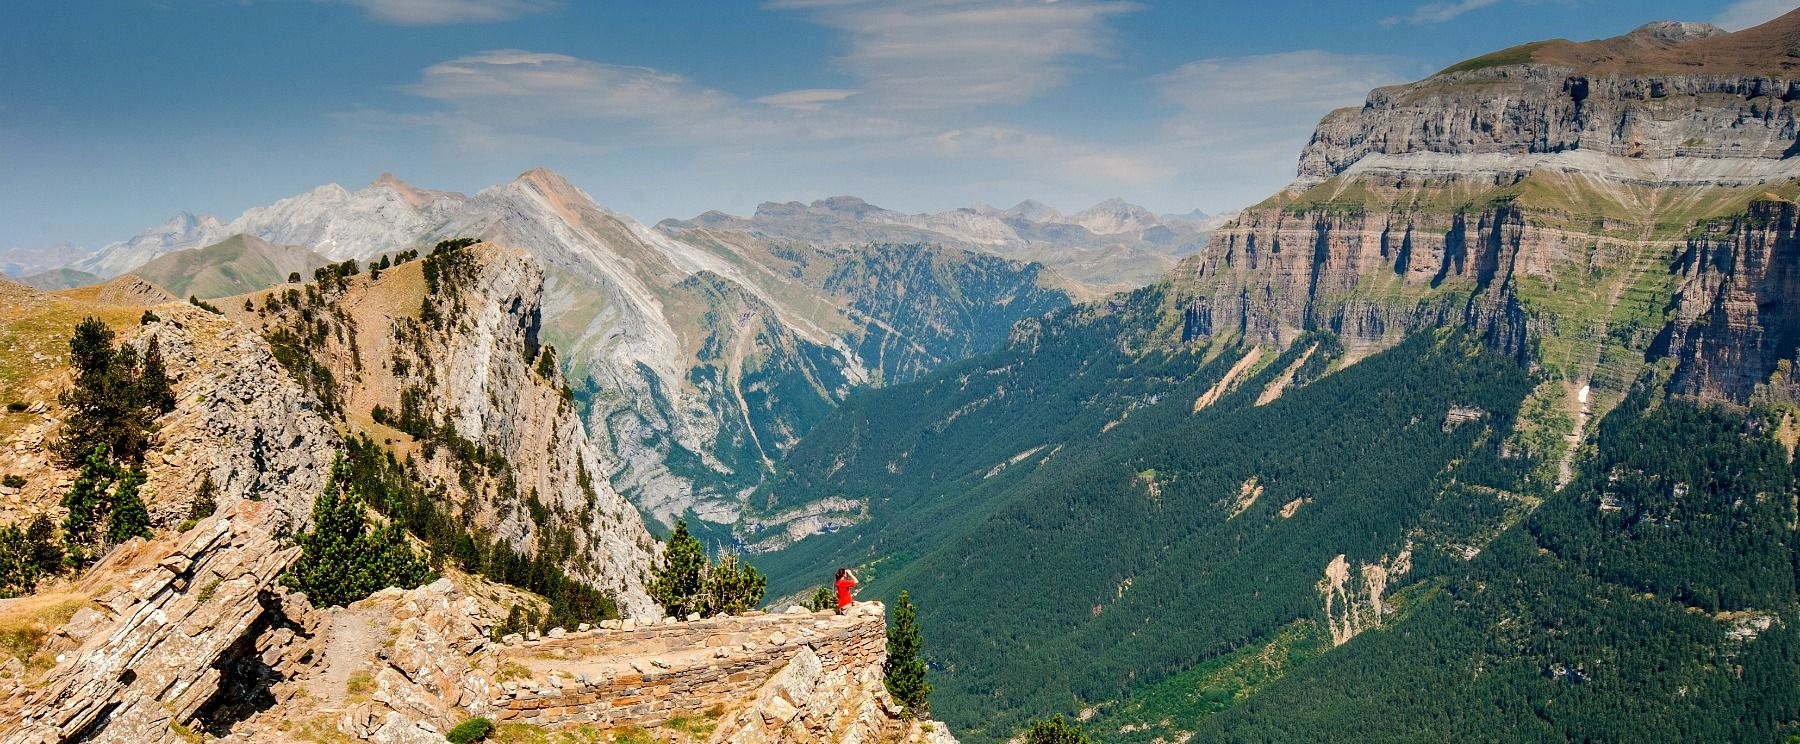 A person looks at the incredible view from a viewing balcony overlooking the Ordesa valley in the Pyrenees on Aragon Active Cooking Holiday Spain